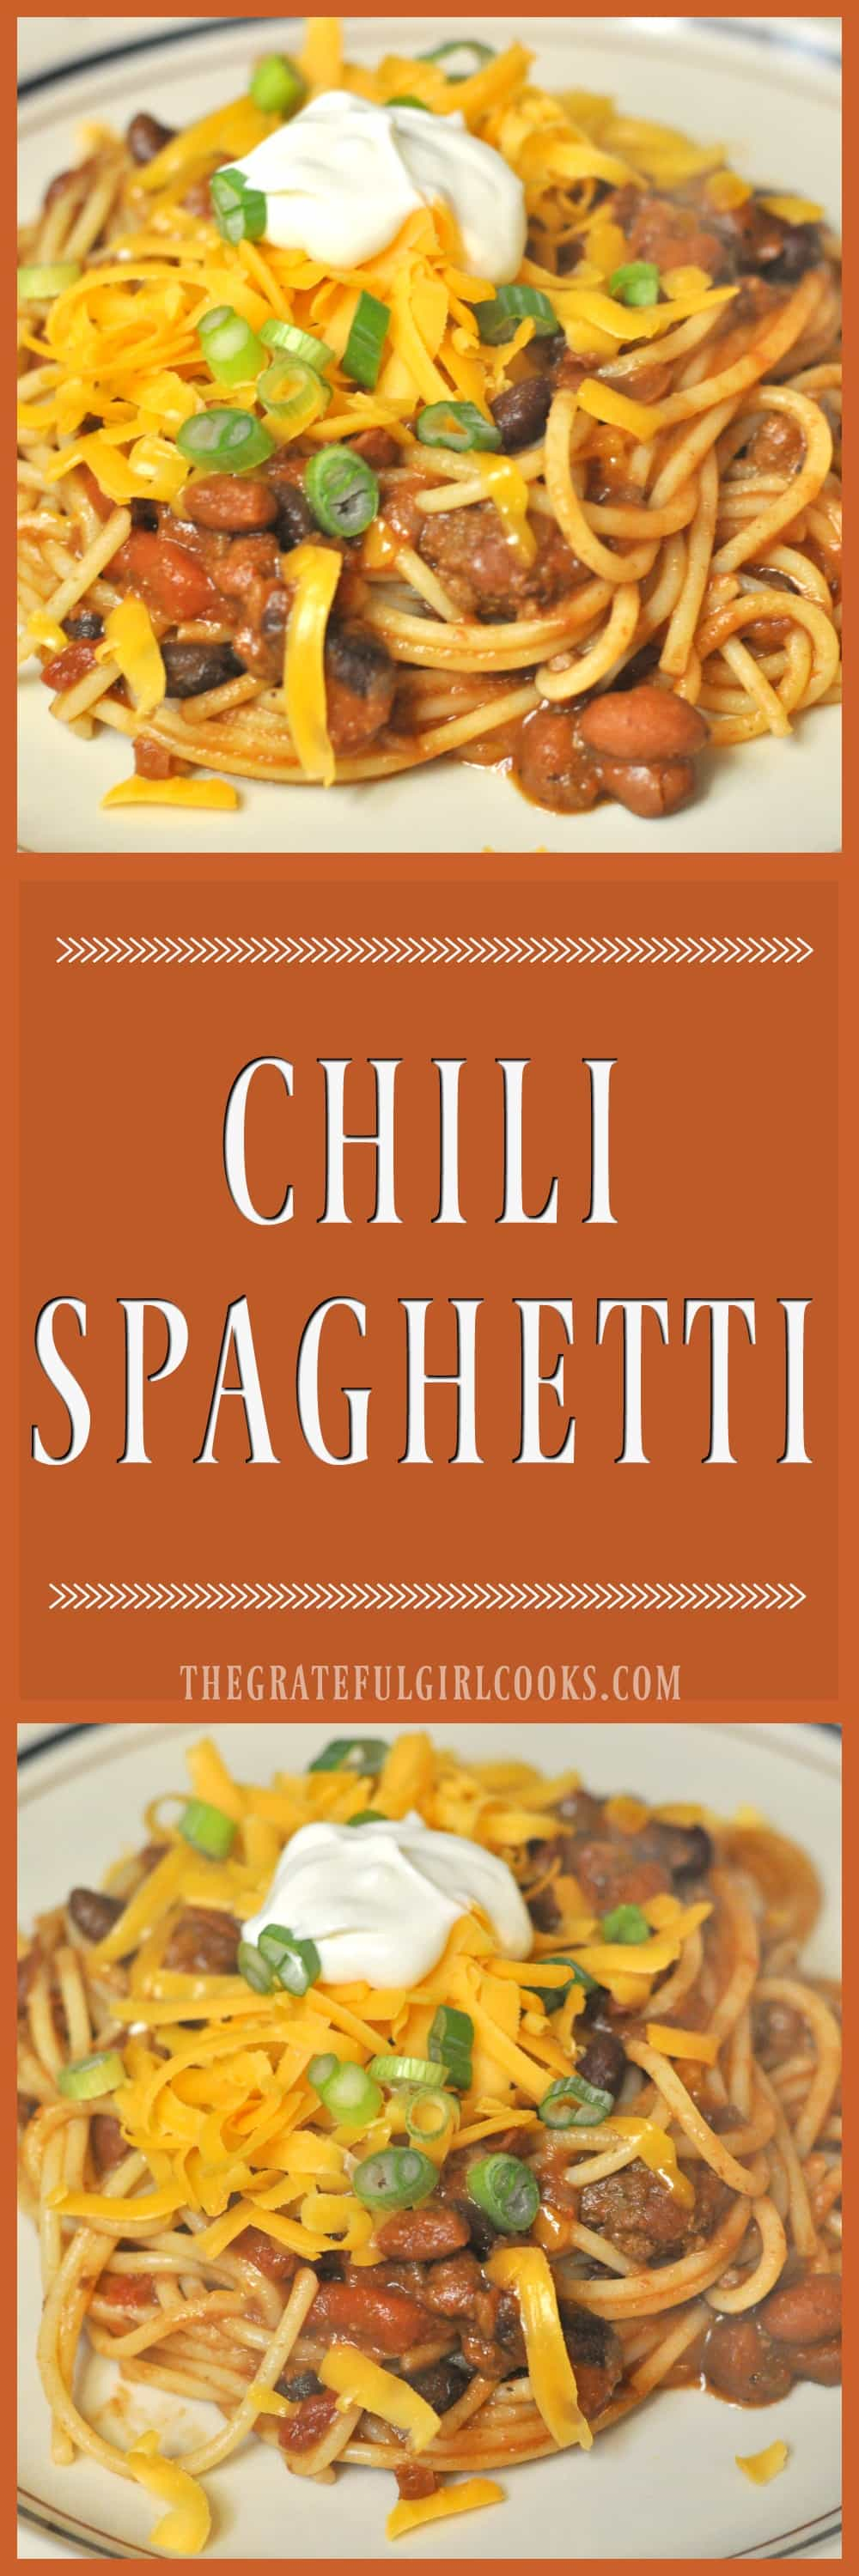 Chili Spaghetti / The Grateful Girl Cooks!